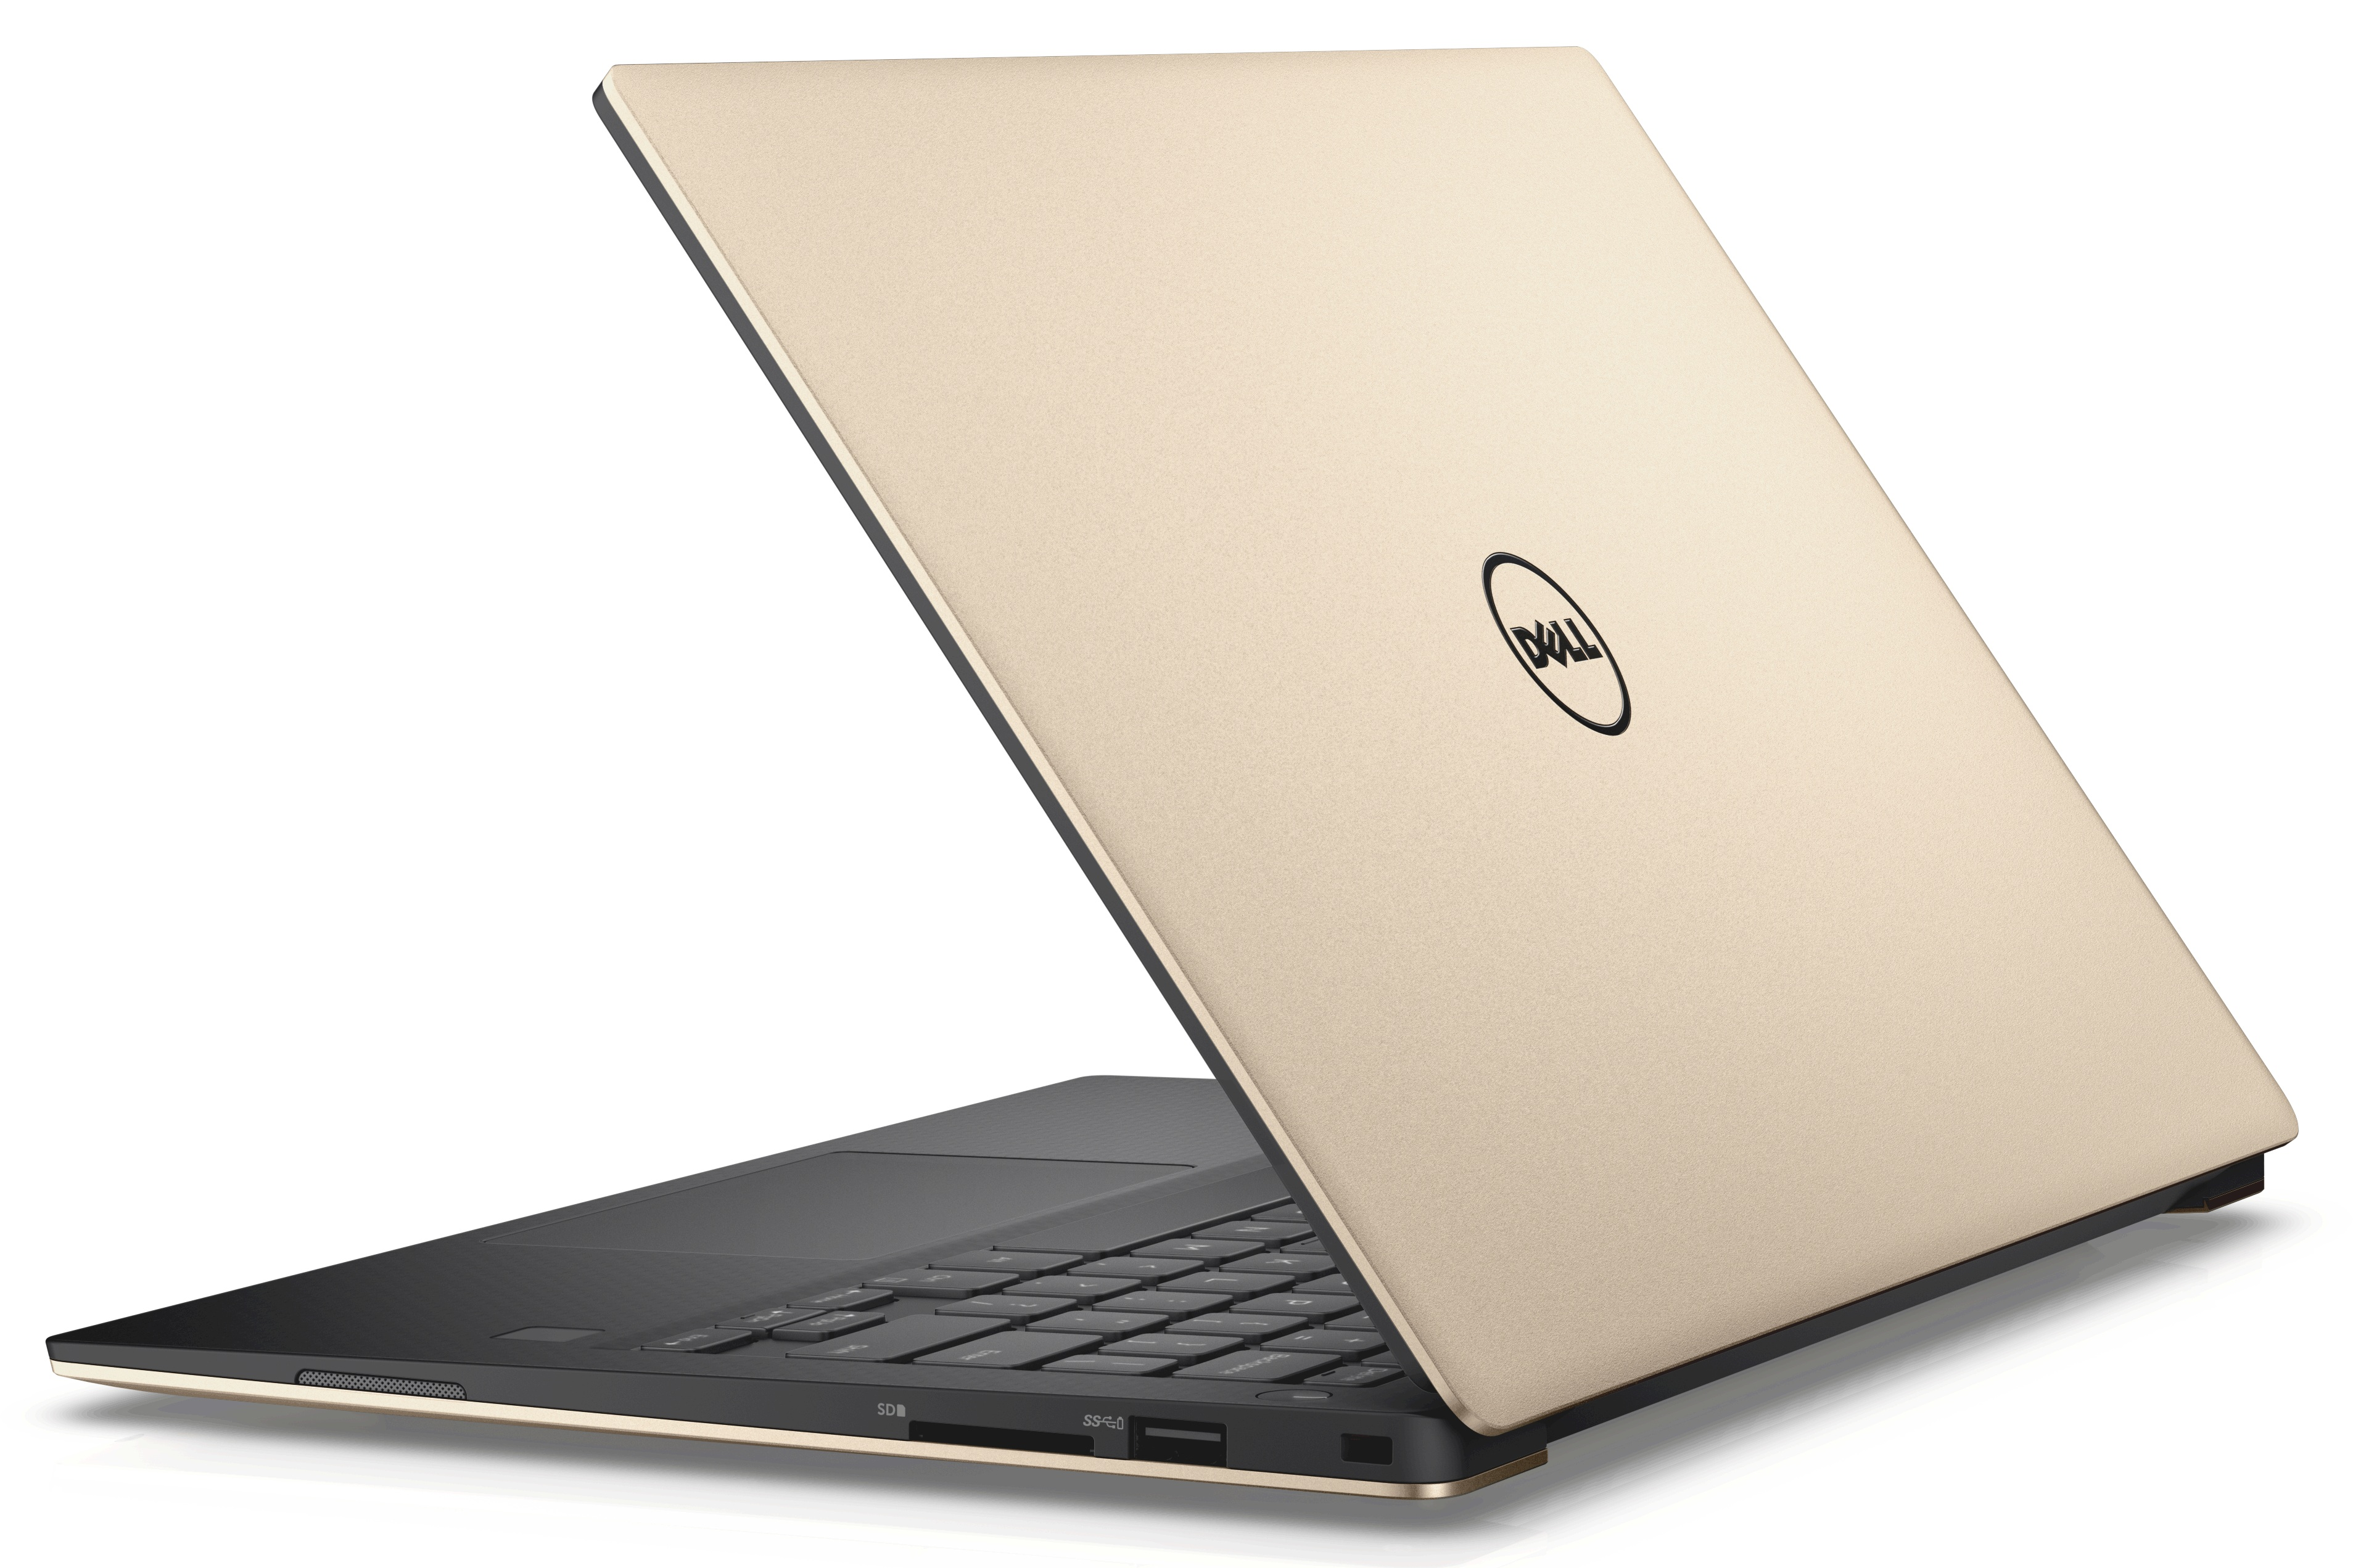 b9779aef054 Specs DELL XPS 13 9360 Gold Notebook 33.8 cm (13.3